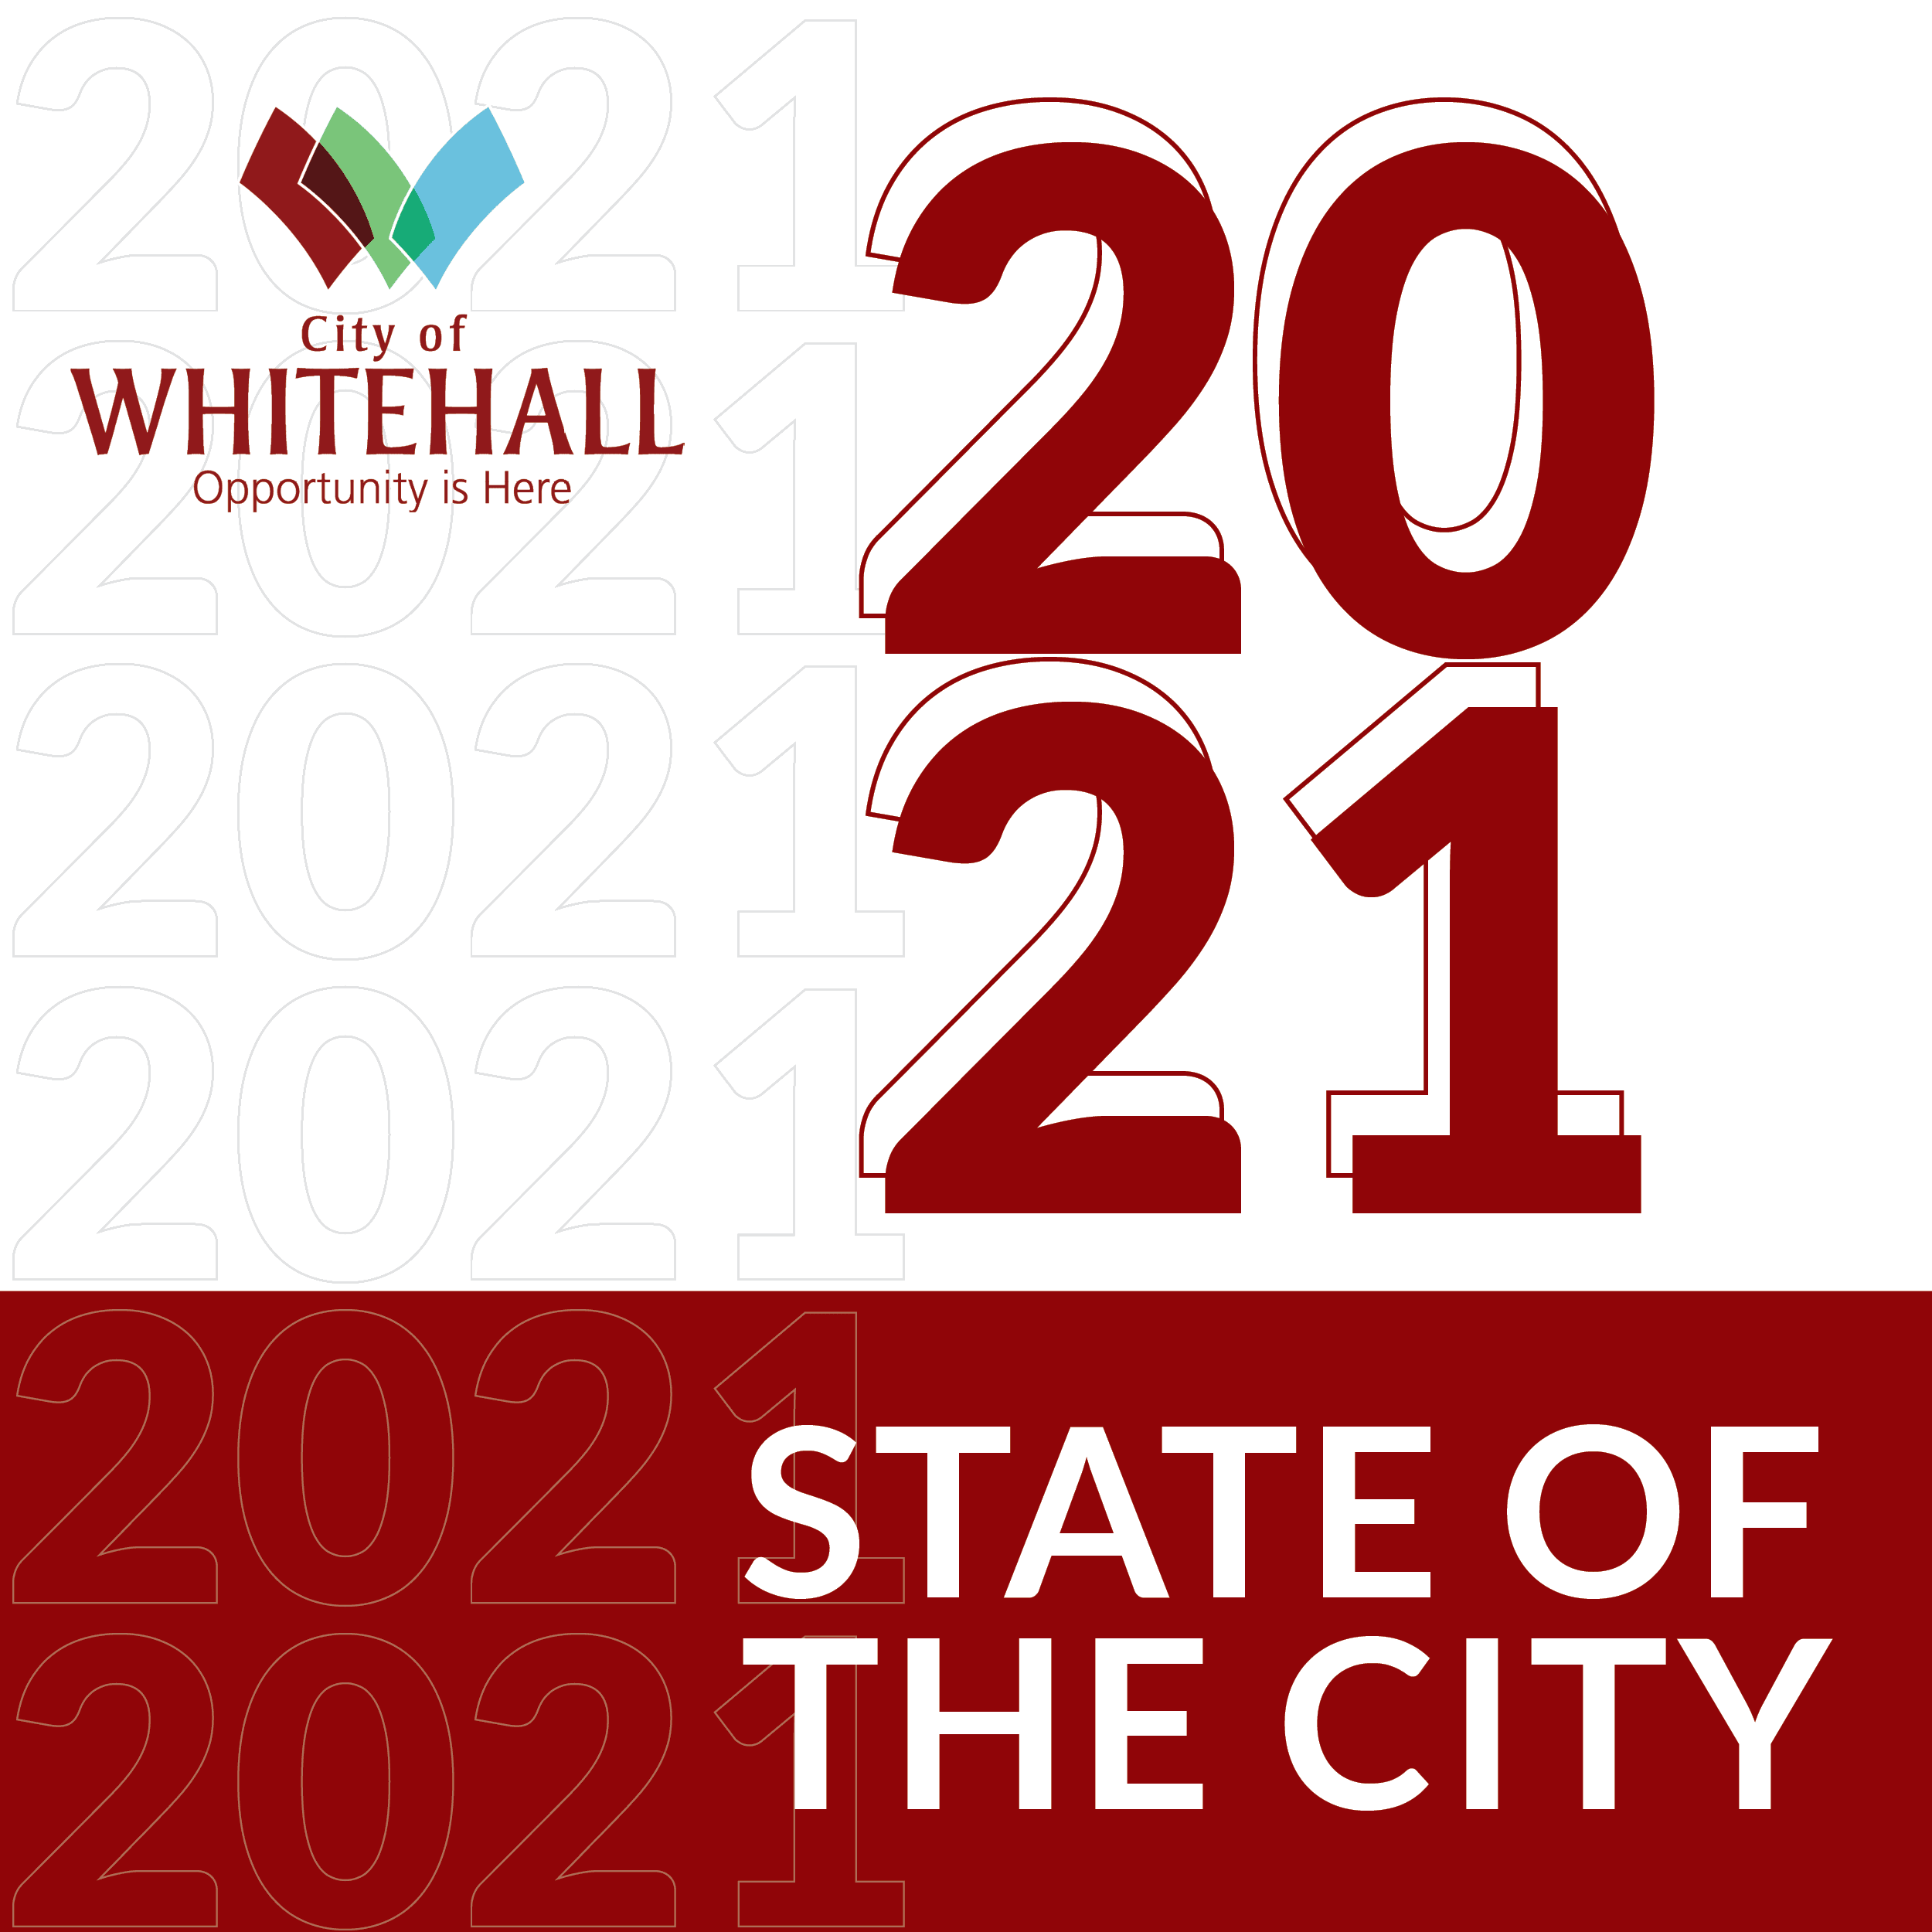 2021 State of the City Headline Image